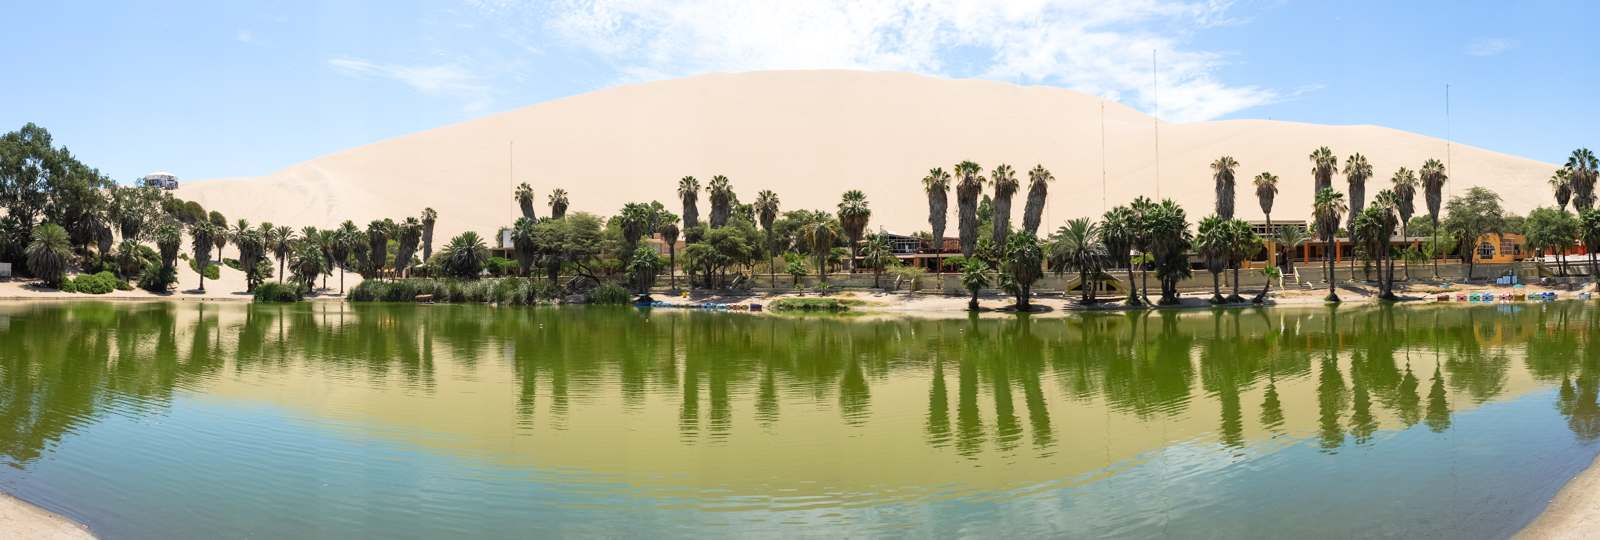 huacachina3 Huacachina   The Mystical Desert Oasis in Peru